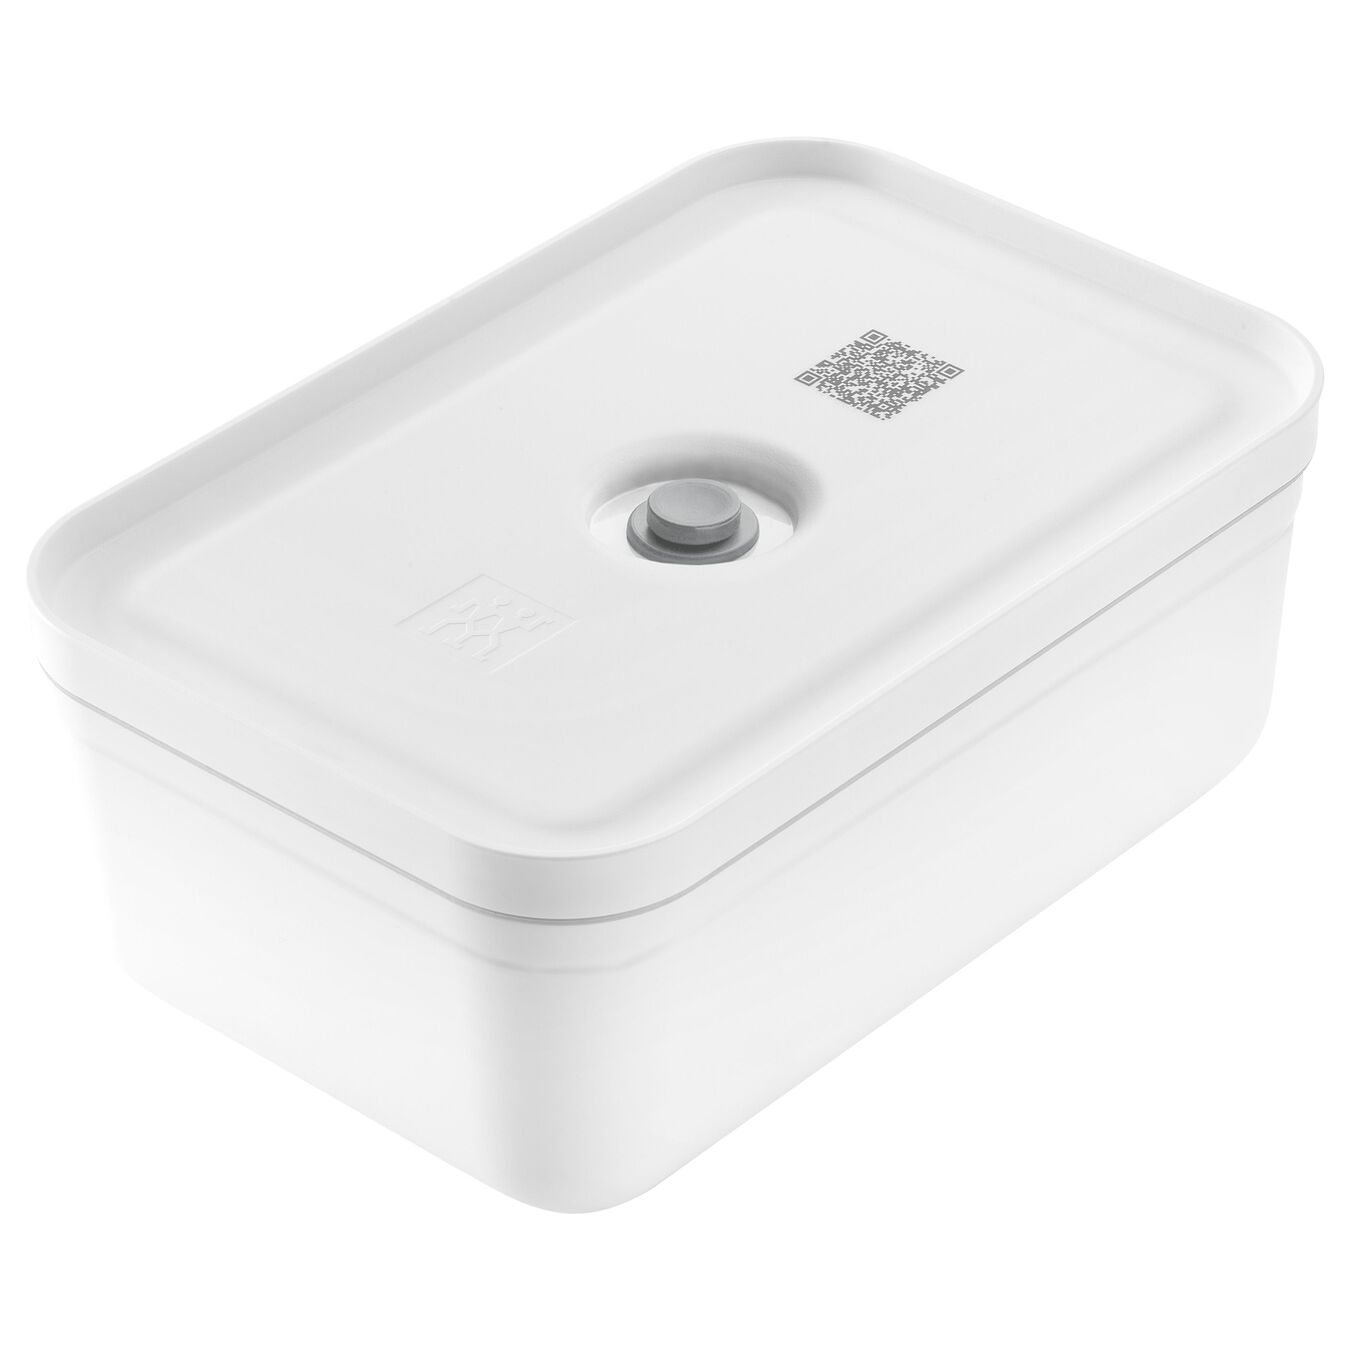 large Vacuum lunch box, plastic, white,,large 1